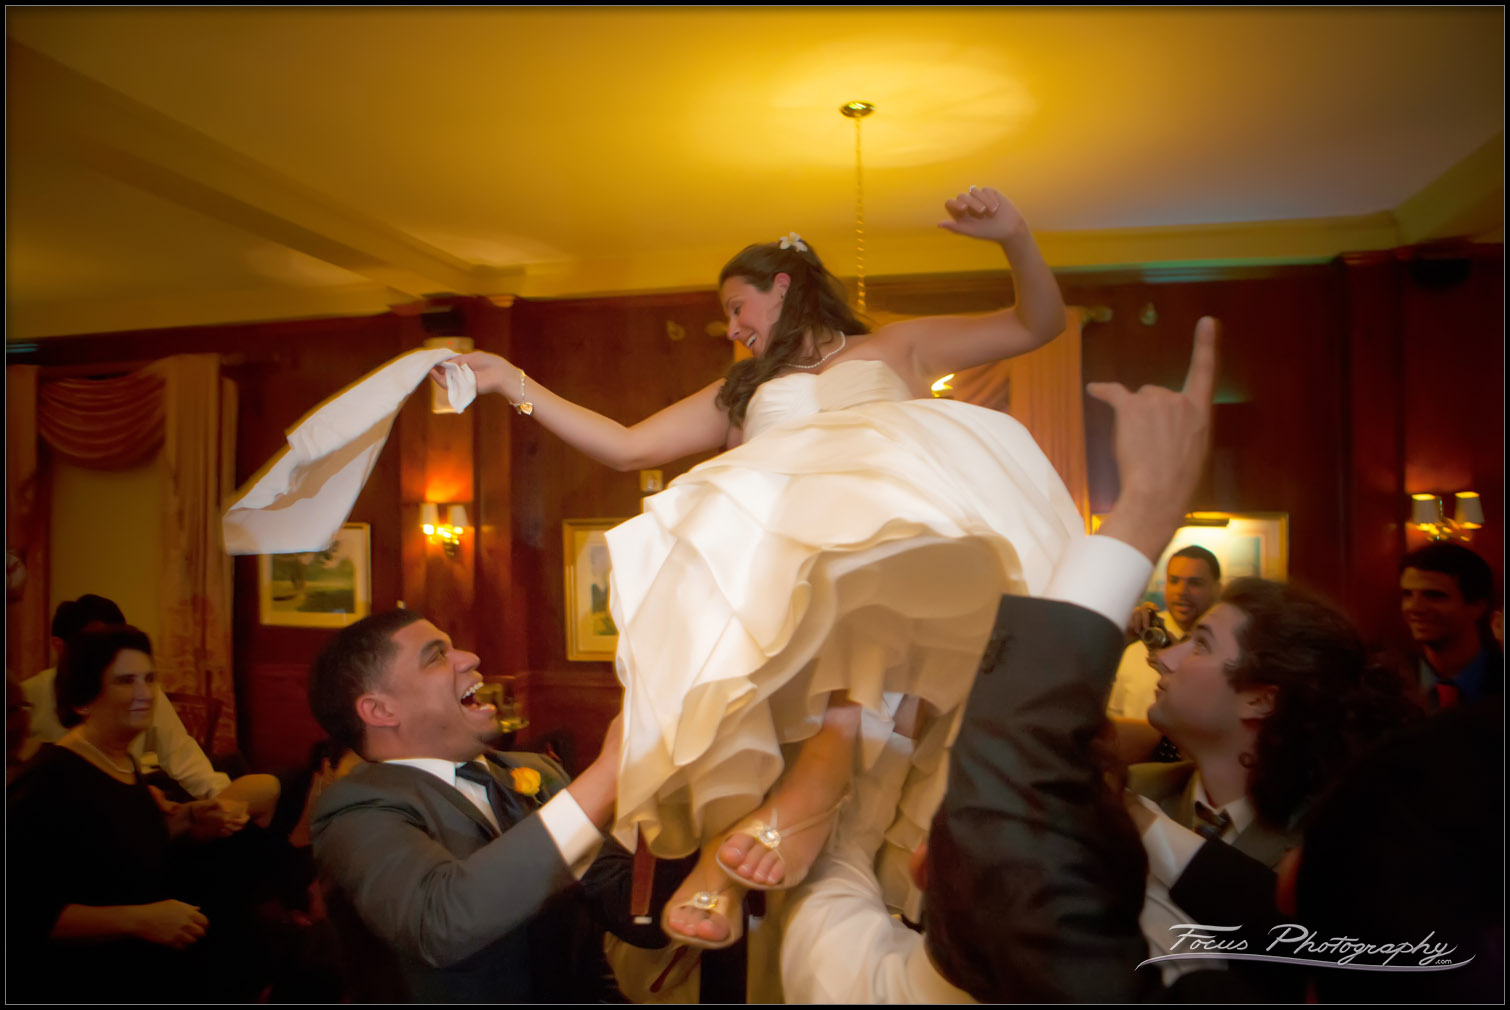 bride lifted during dance at wedding reception at Maine's Colony Hotel